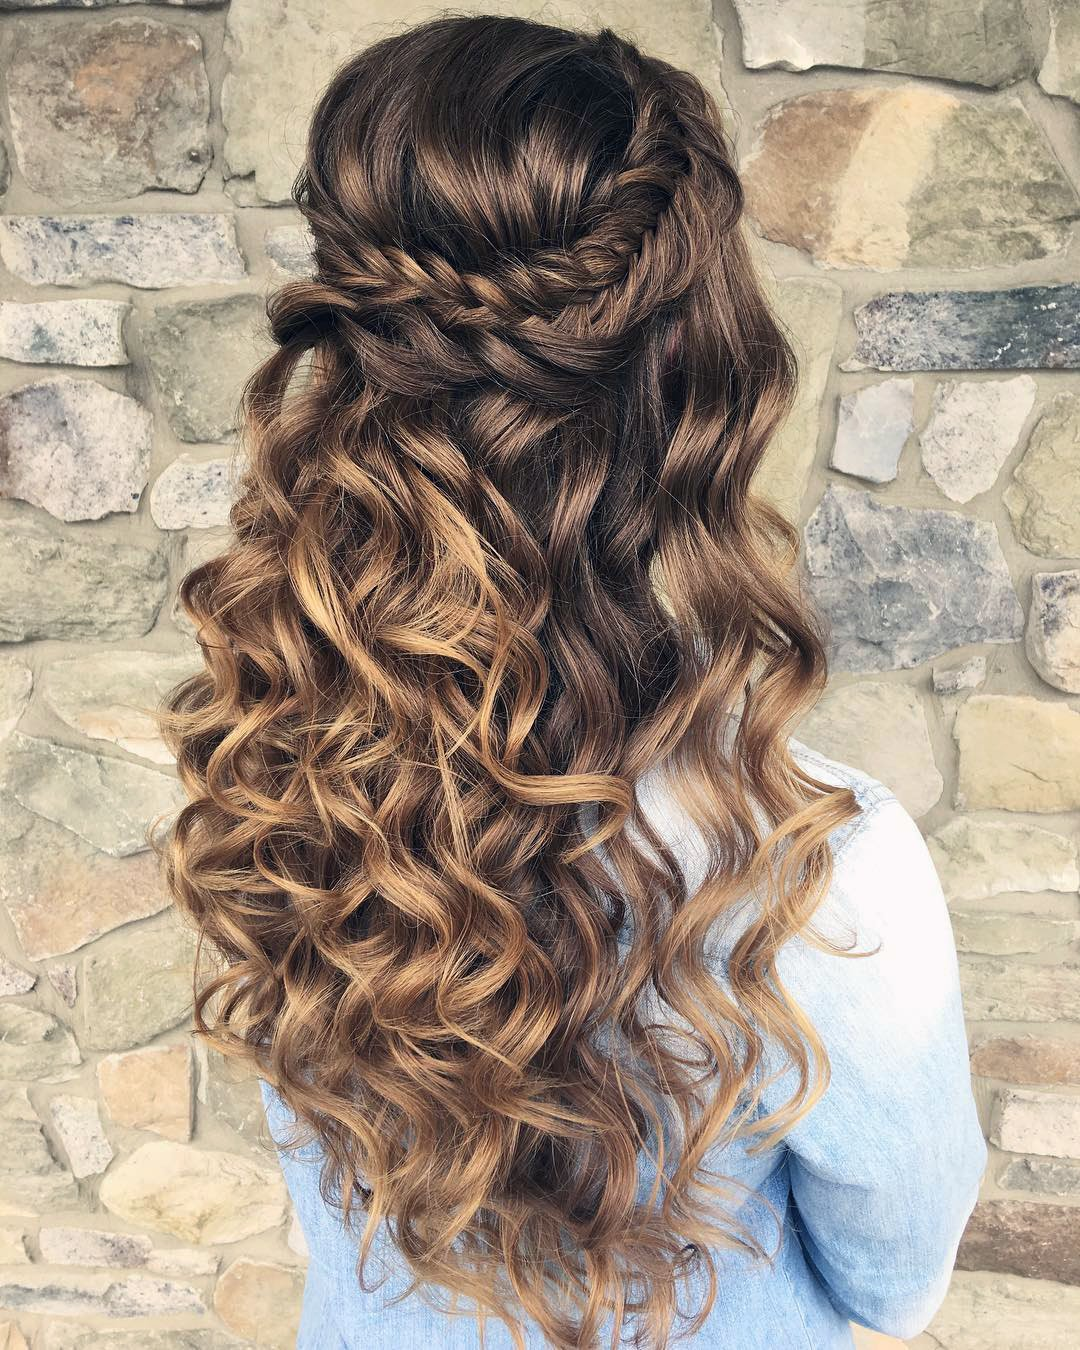 half up half down wedding hairstyles curls and braid on long hair updosbykarina